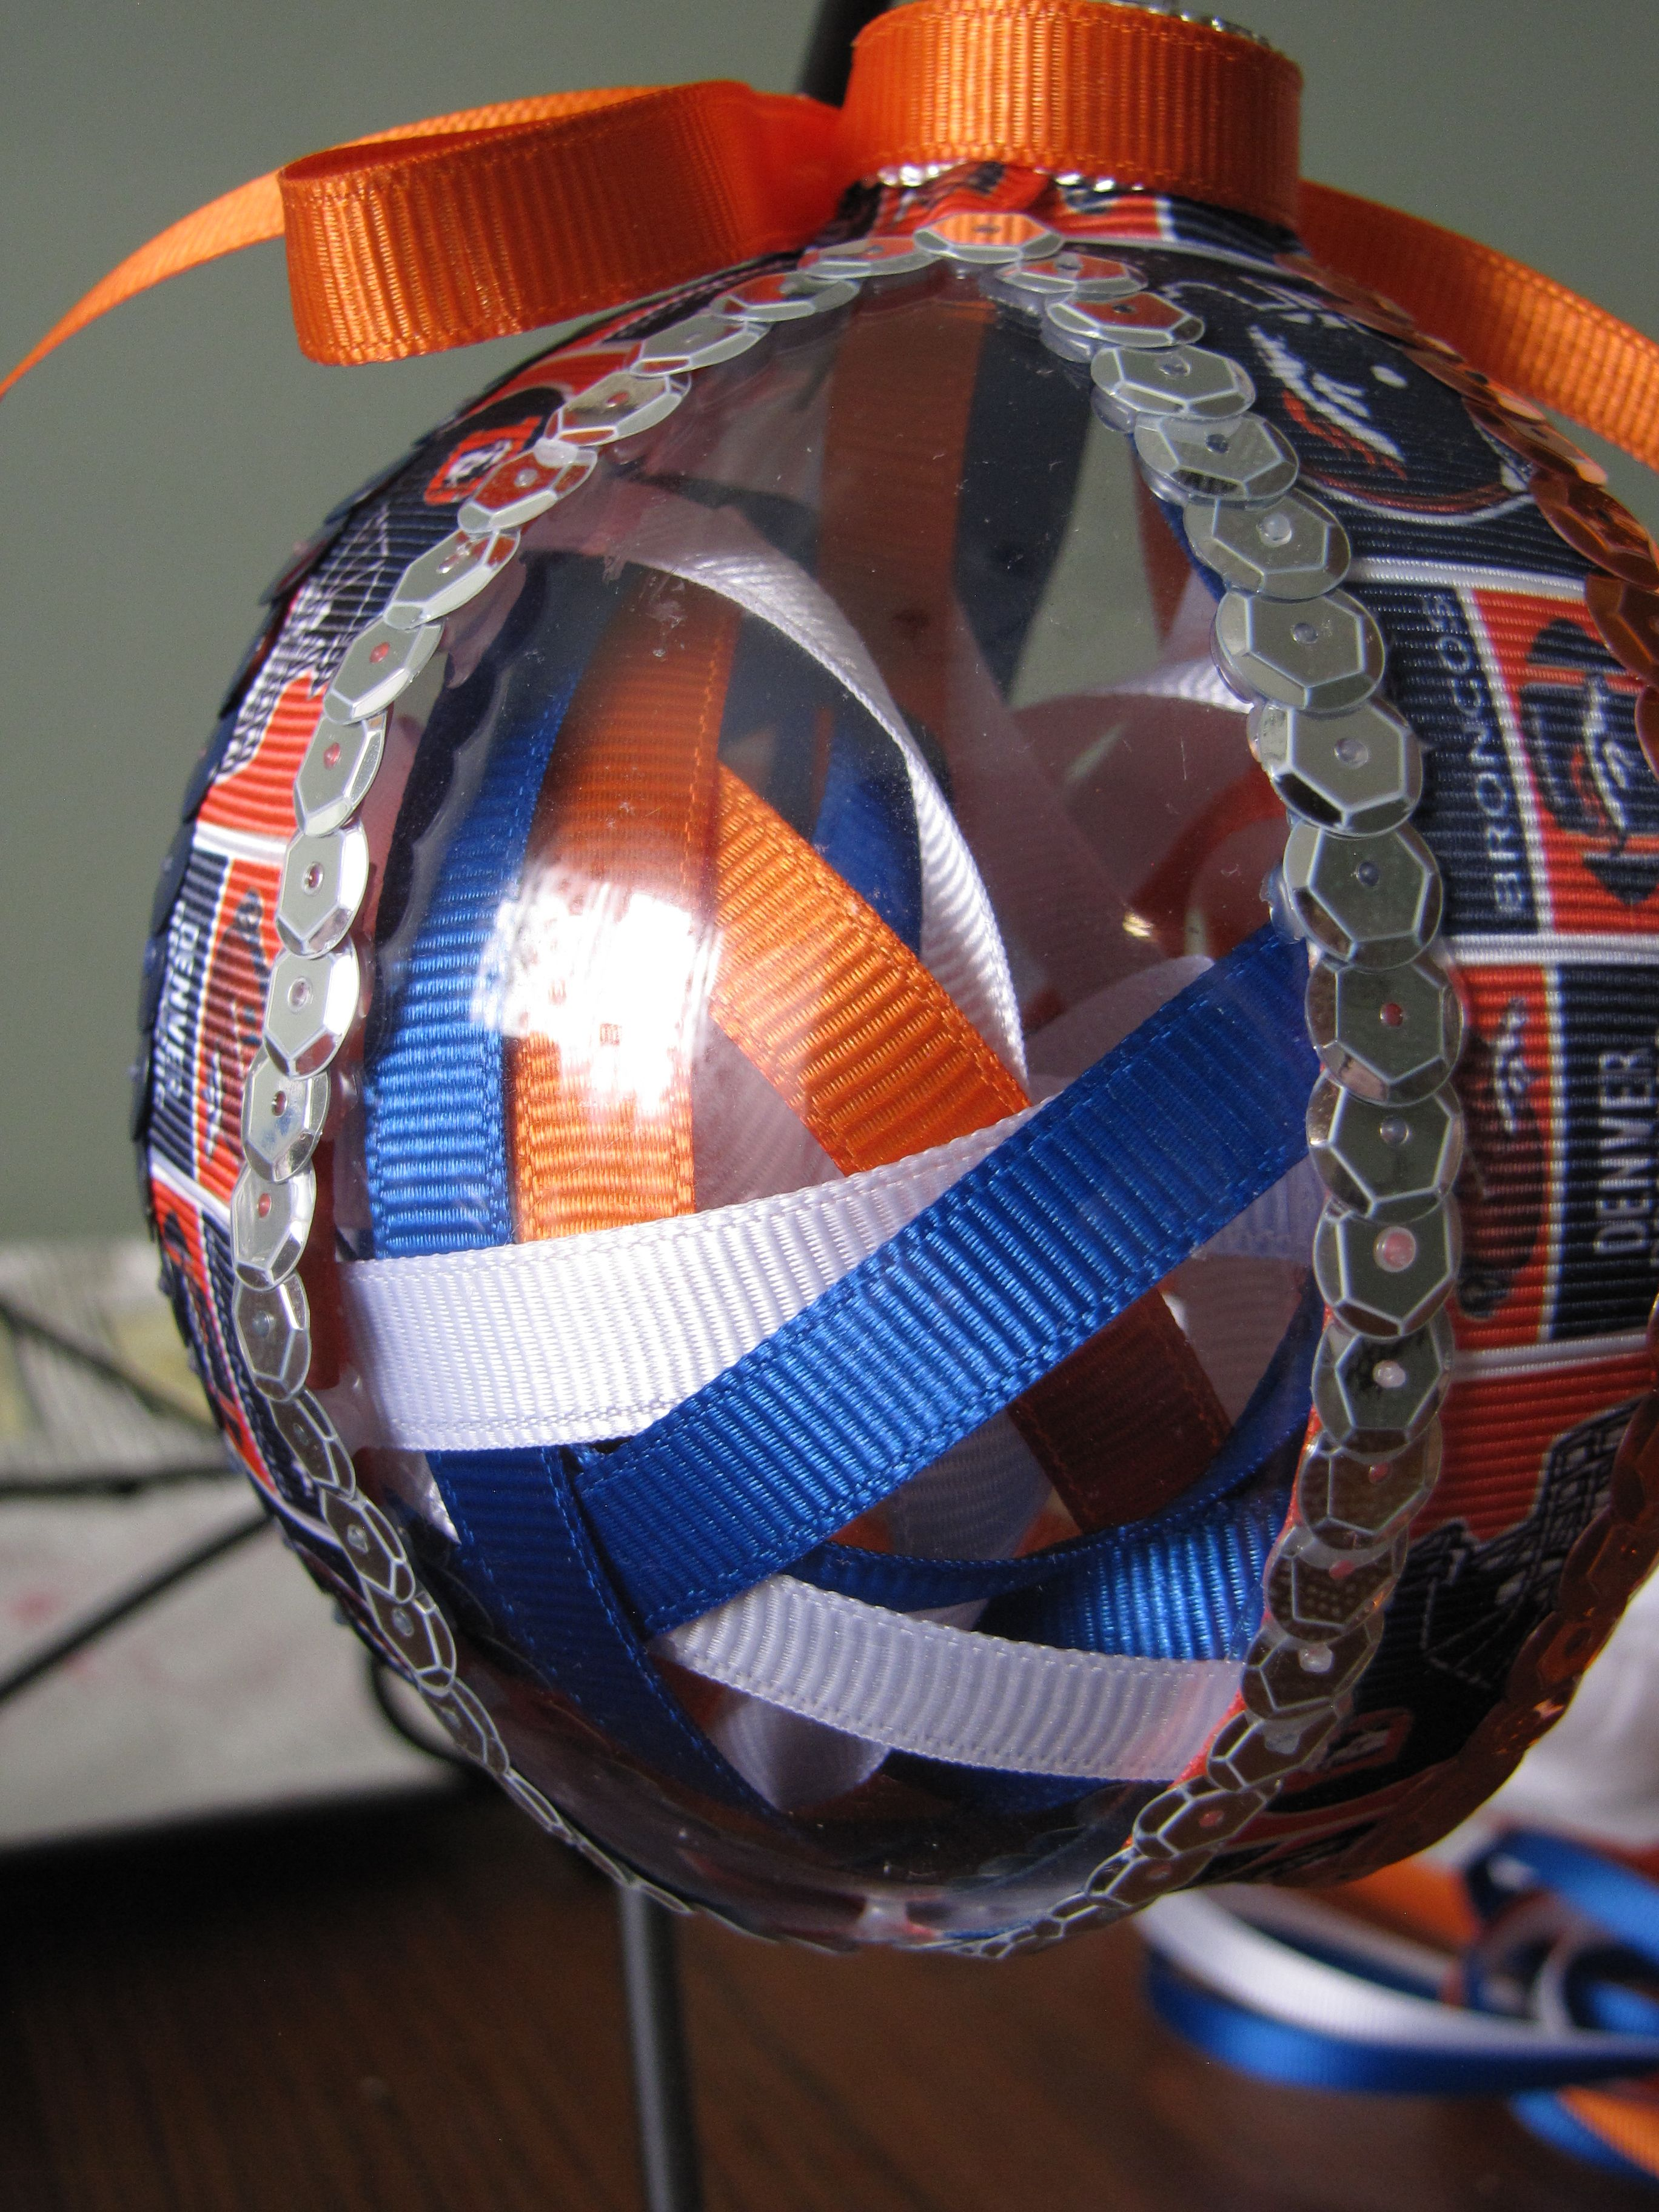 Hand made Denver Bronco ornament - available for purchase - contact me for details!